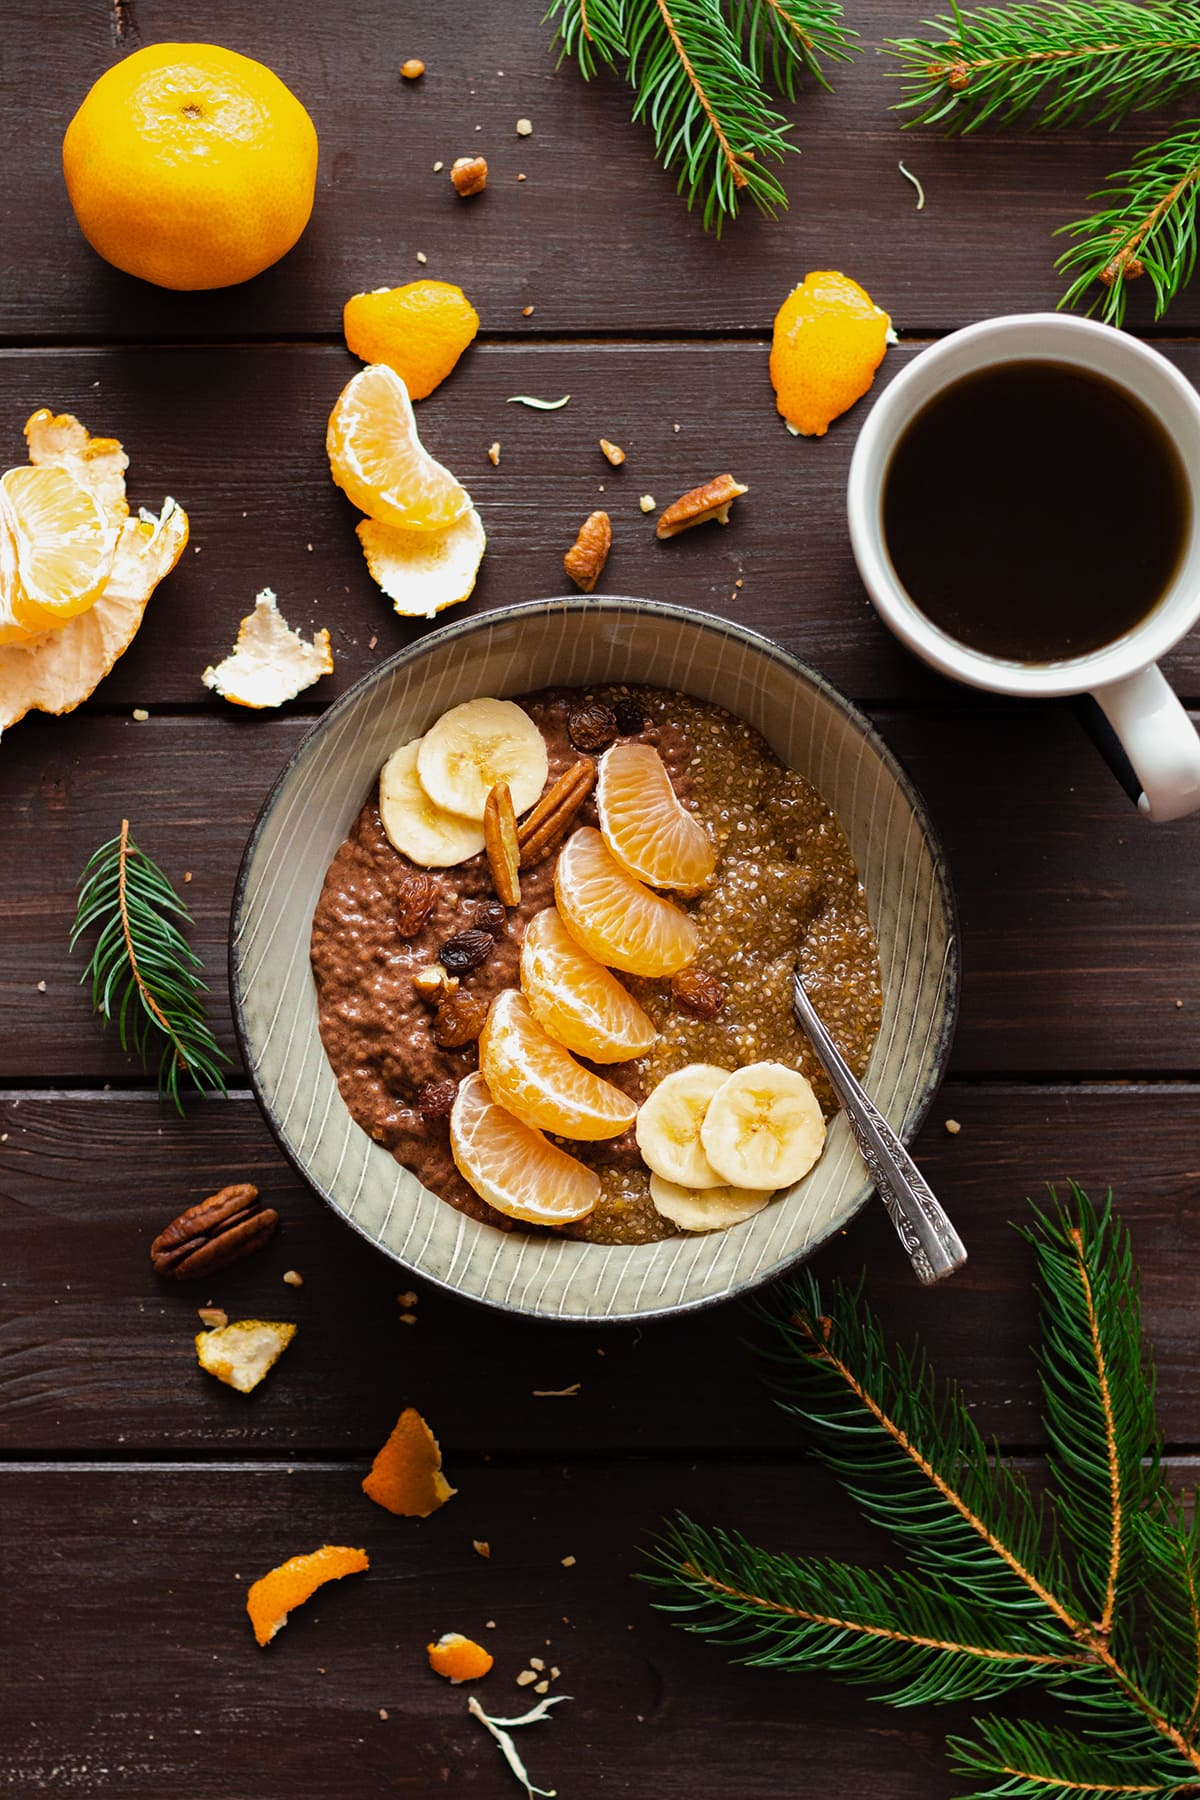 Tangerine Chocolate Chia Pudding in a bowl on a dark wooden table with a cup of coffee on the left.